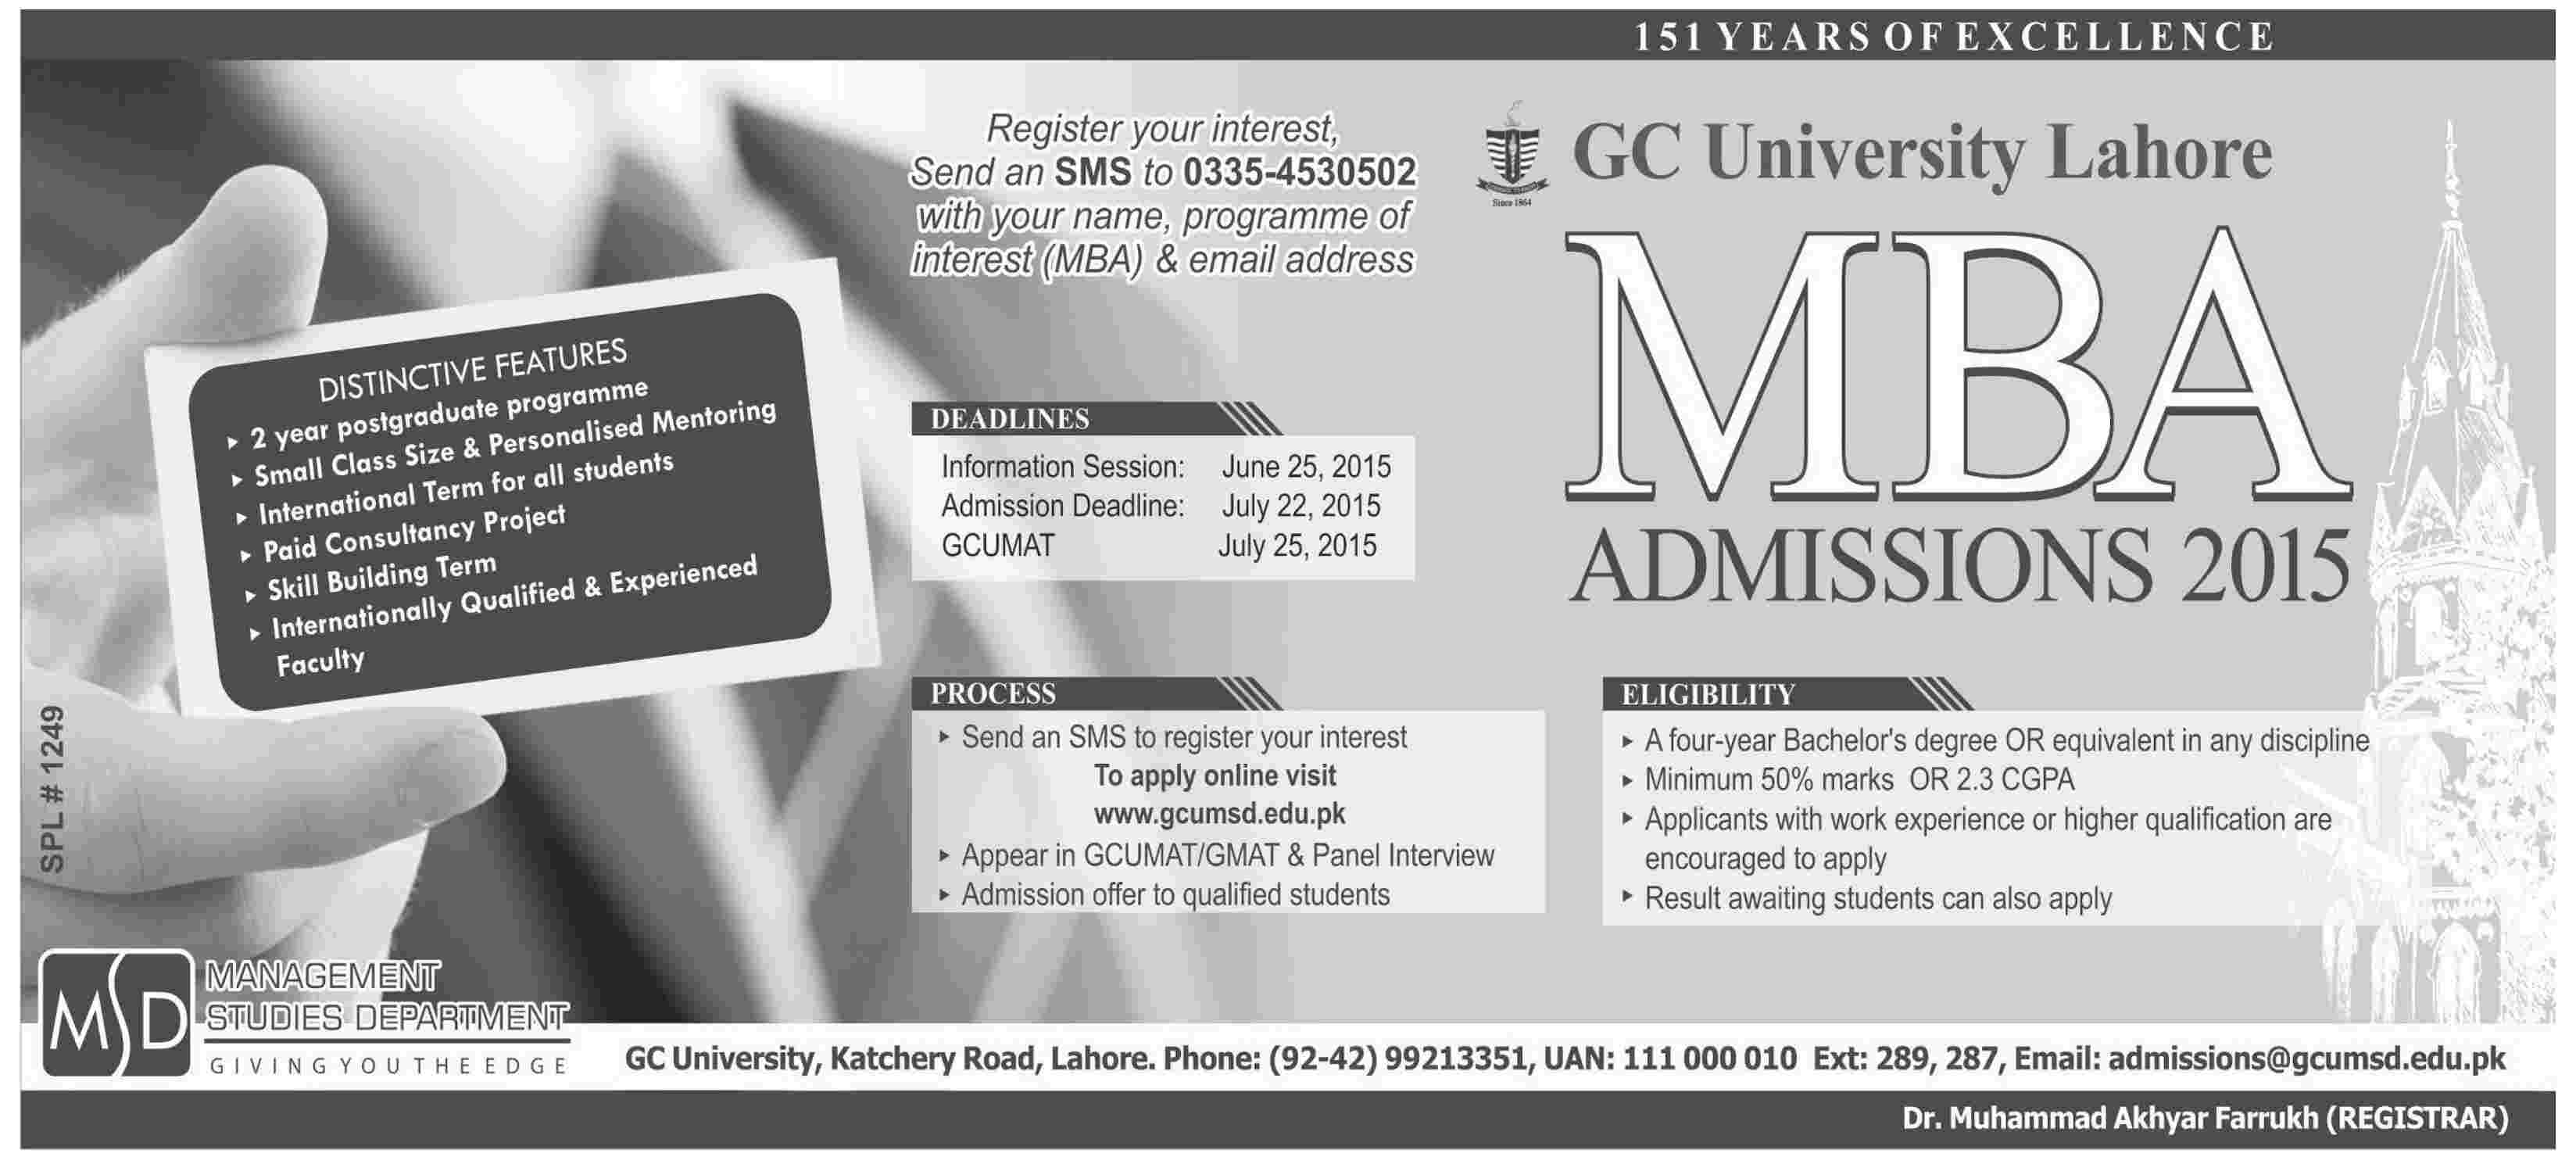 GC University Lahore MBA Admission 2015